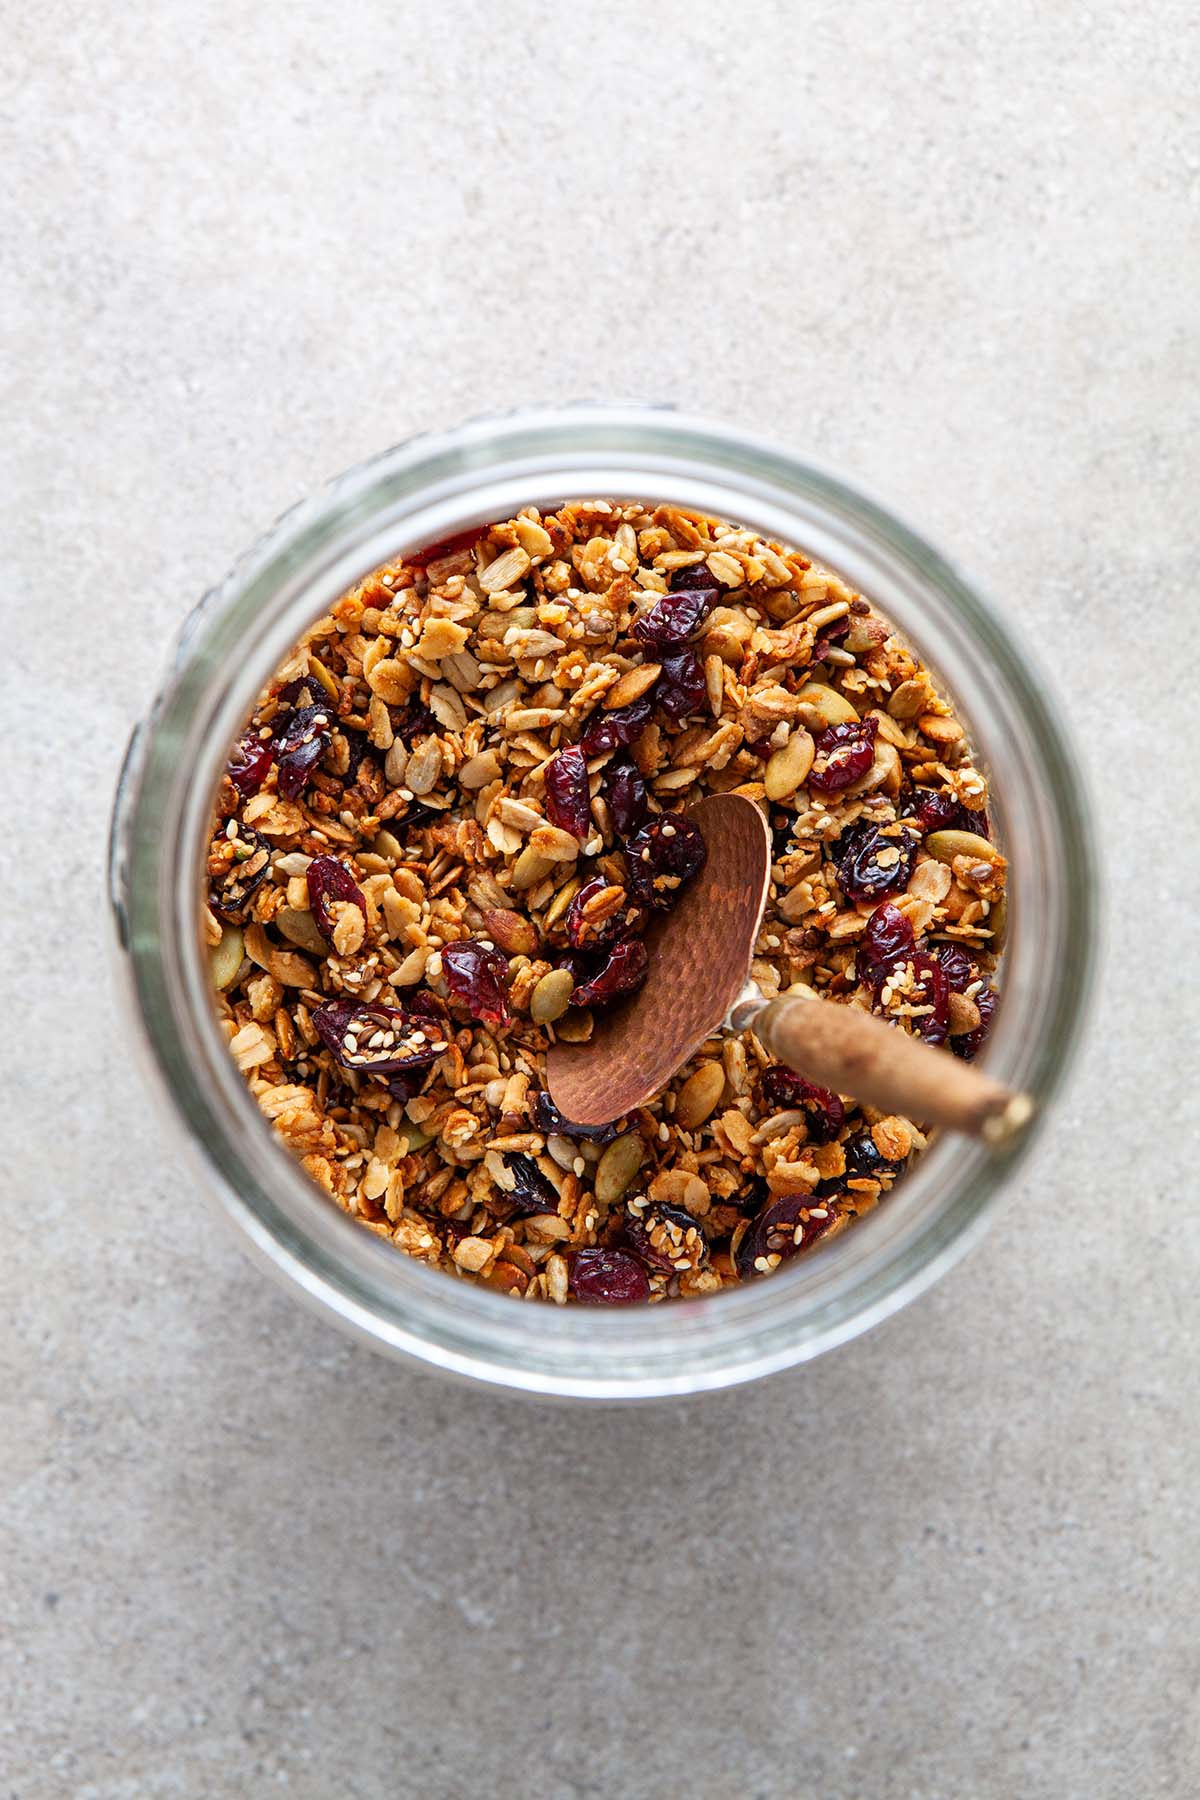 Overhead shot of the inside of a jar of nut-free granola.